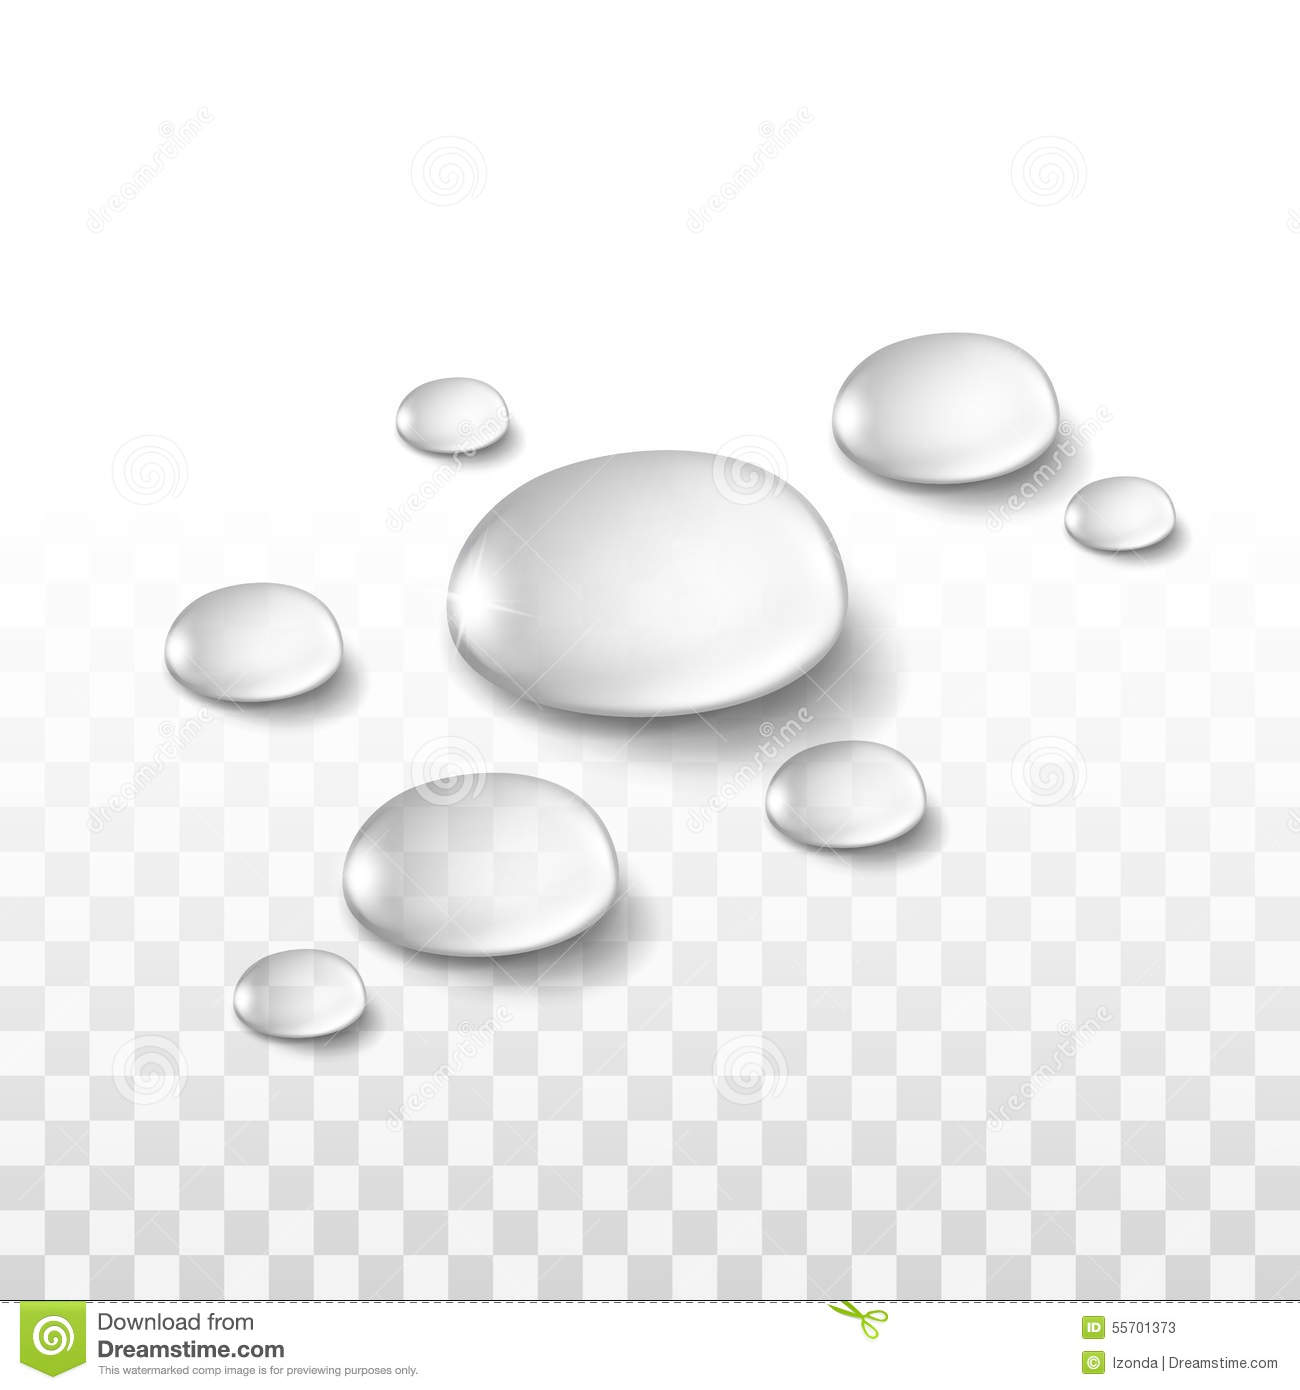 Raindrops Falling On Flowers Wallpaper Water Drops Set On Transparent Background Stock Vector